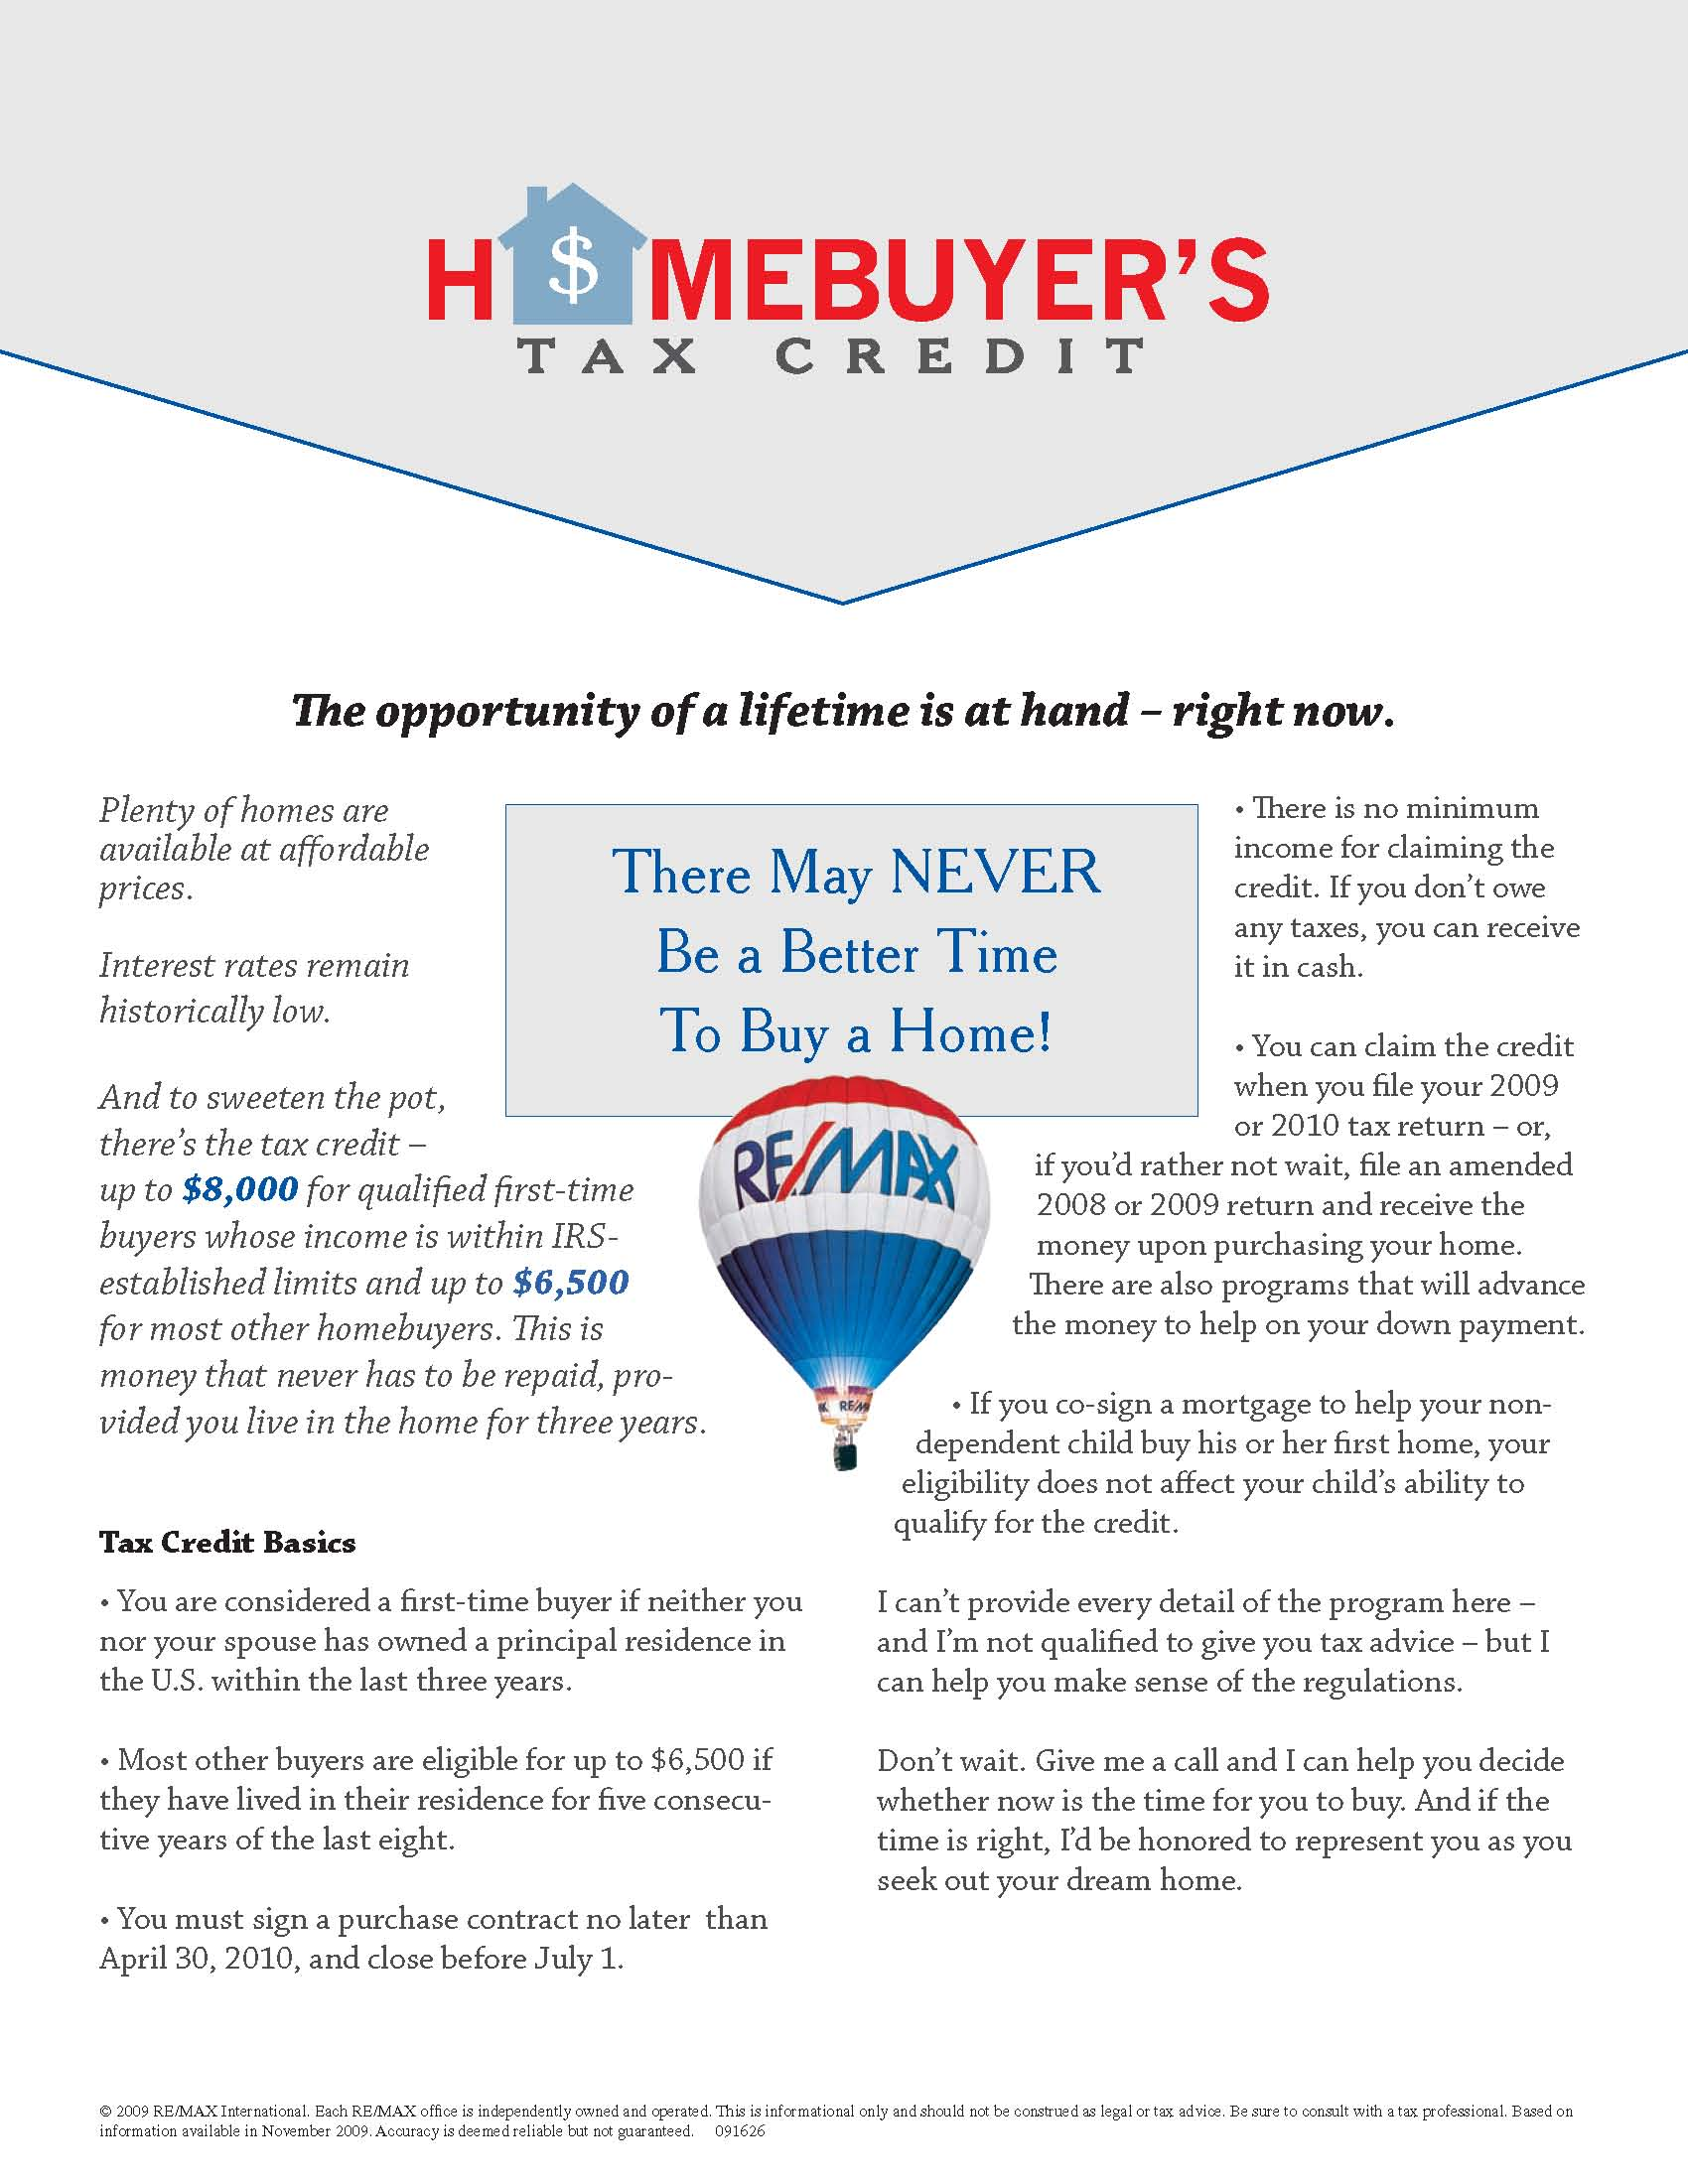 There May NEVER Be a Better Time to BUY A HOME!